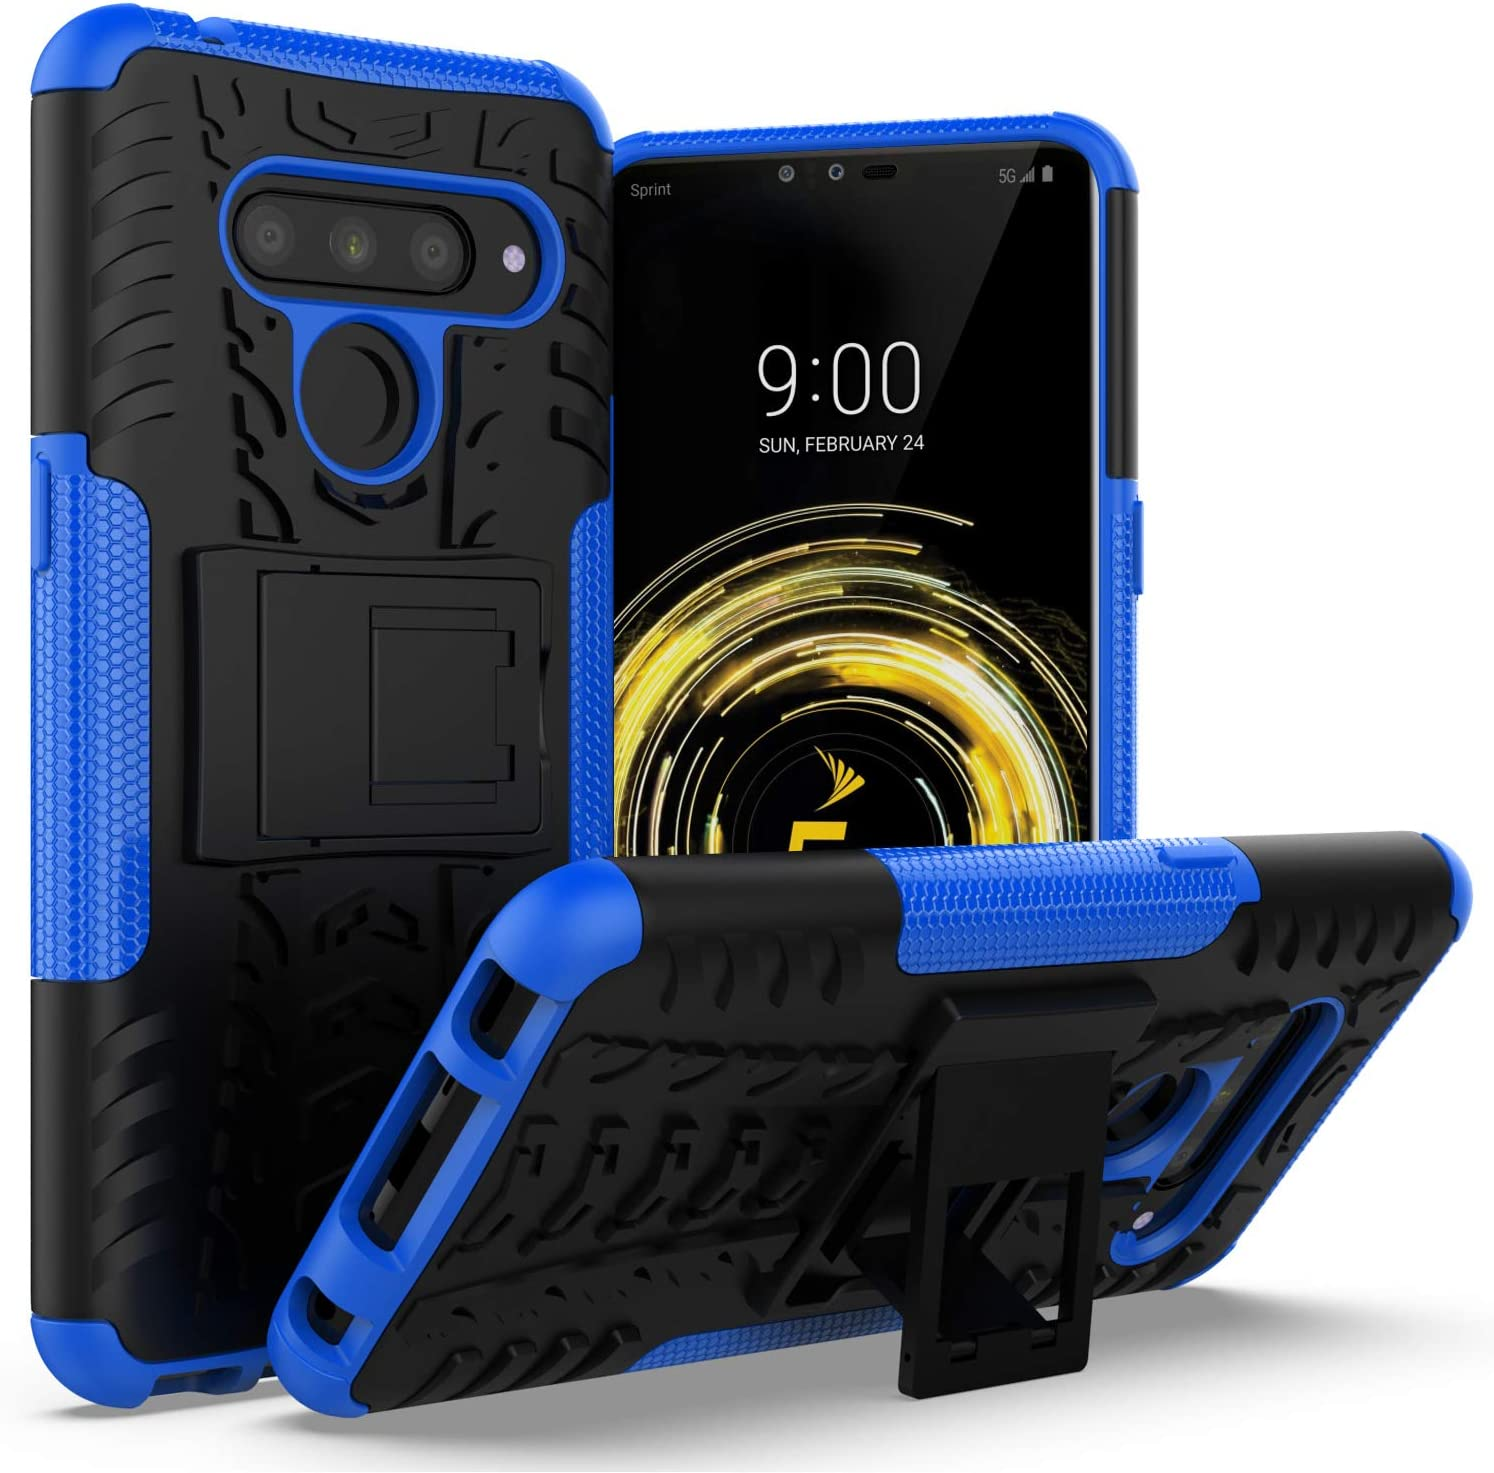 LG V50 Case,LG V50 ThinQ Case with Kickstand Holder,AZHEPU Dual Layer Shock Absorbing Rugged Armor Protective Phone Cover Case for LG V50 5G / LG V50 ThinQ 5G (2019) Blue